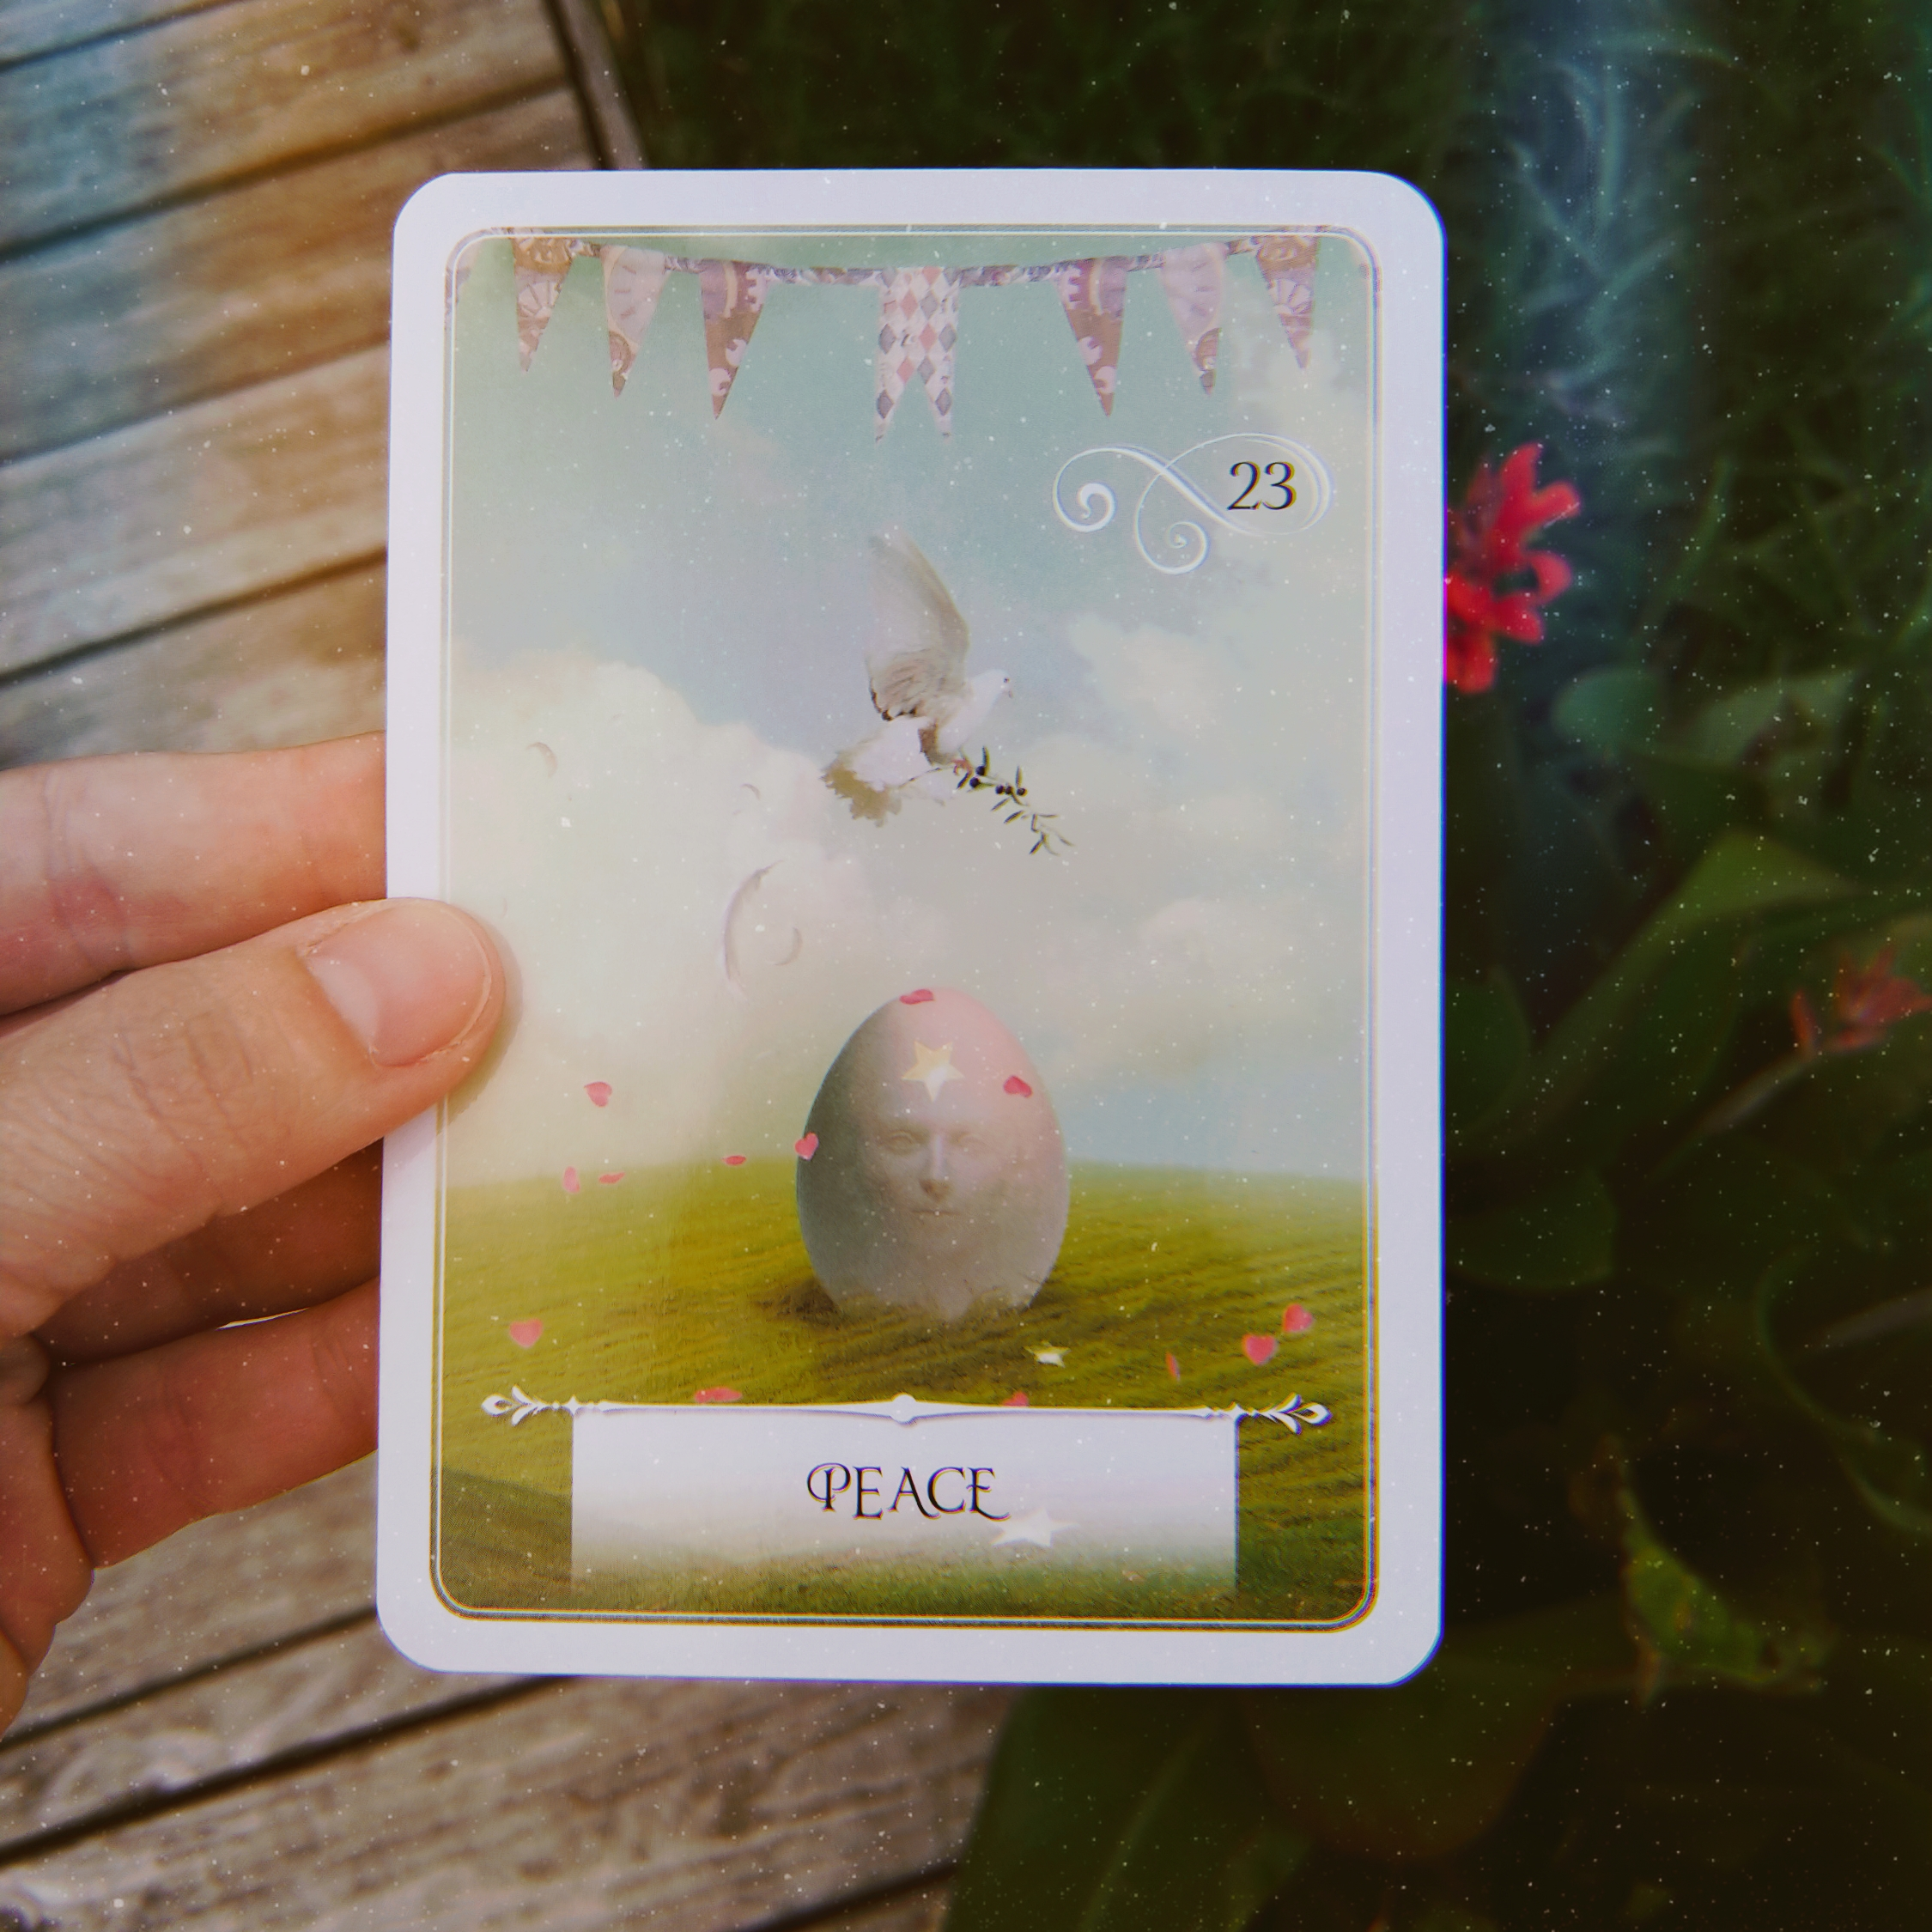 Wisdom of the Oracle divination cards by Colette Baron-Reid